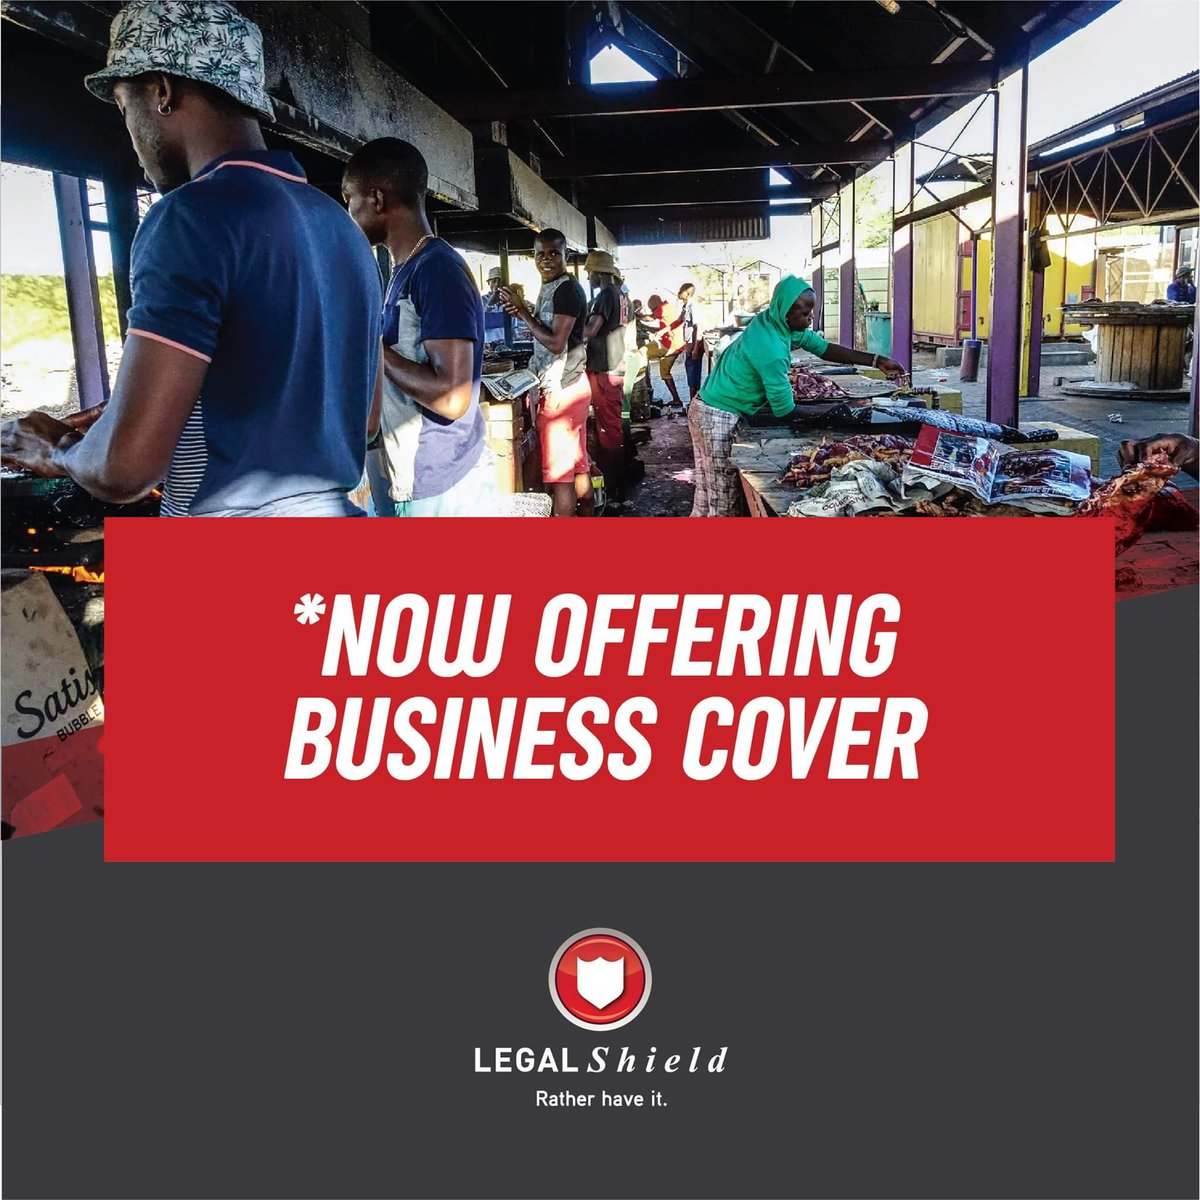 Legal Shield now covers your #business against legal expenses. Check which cover is right for you and your business. Visit: http://legalshield.na/legal/   #Entrepreneur  #Sidehustle #Businesscover pic.twitter.com/VqHzSIfu6E